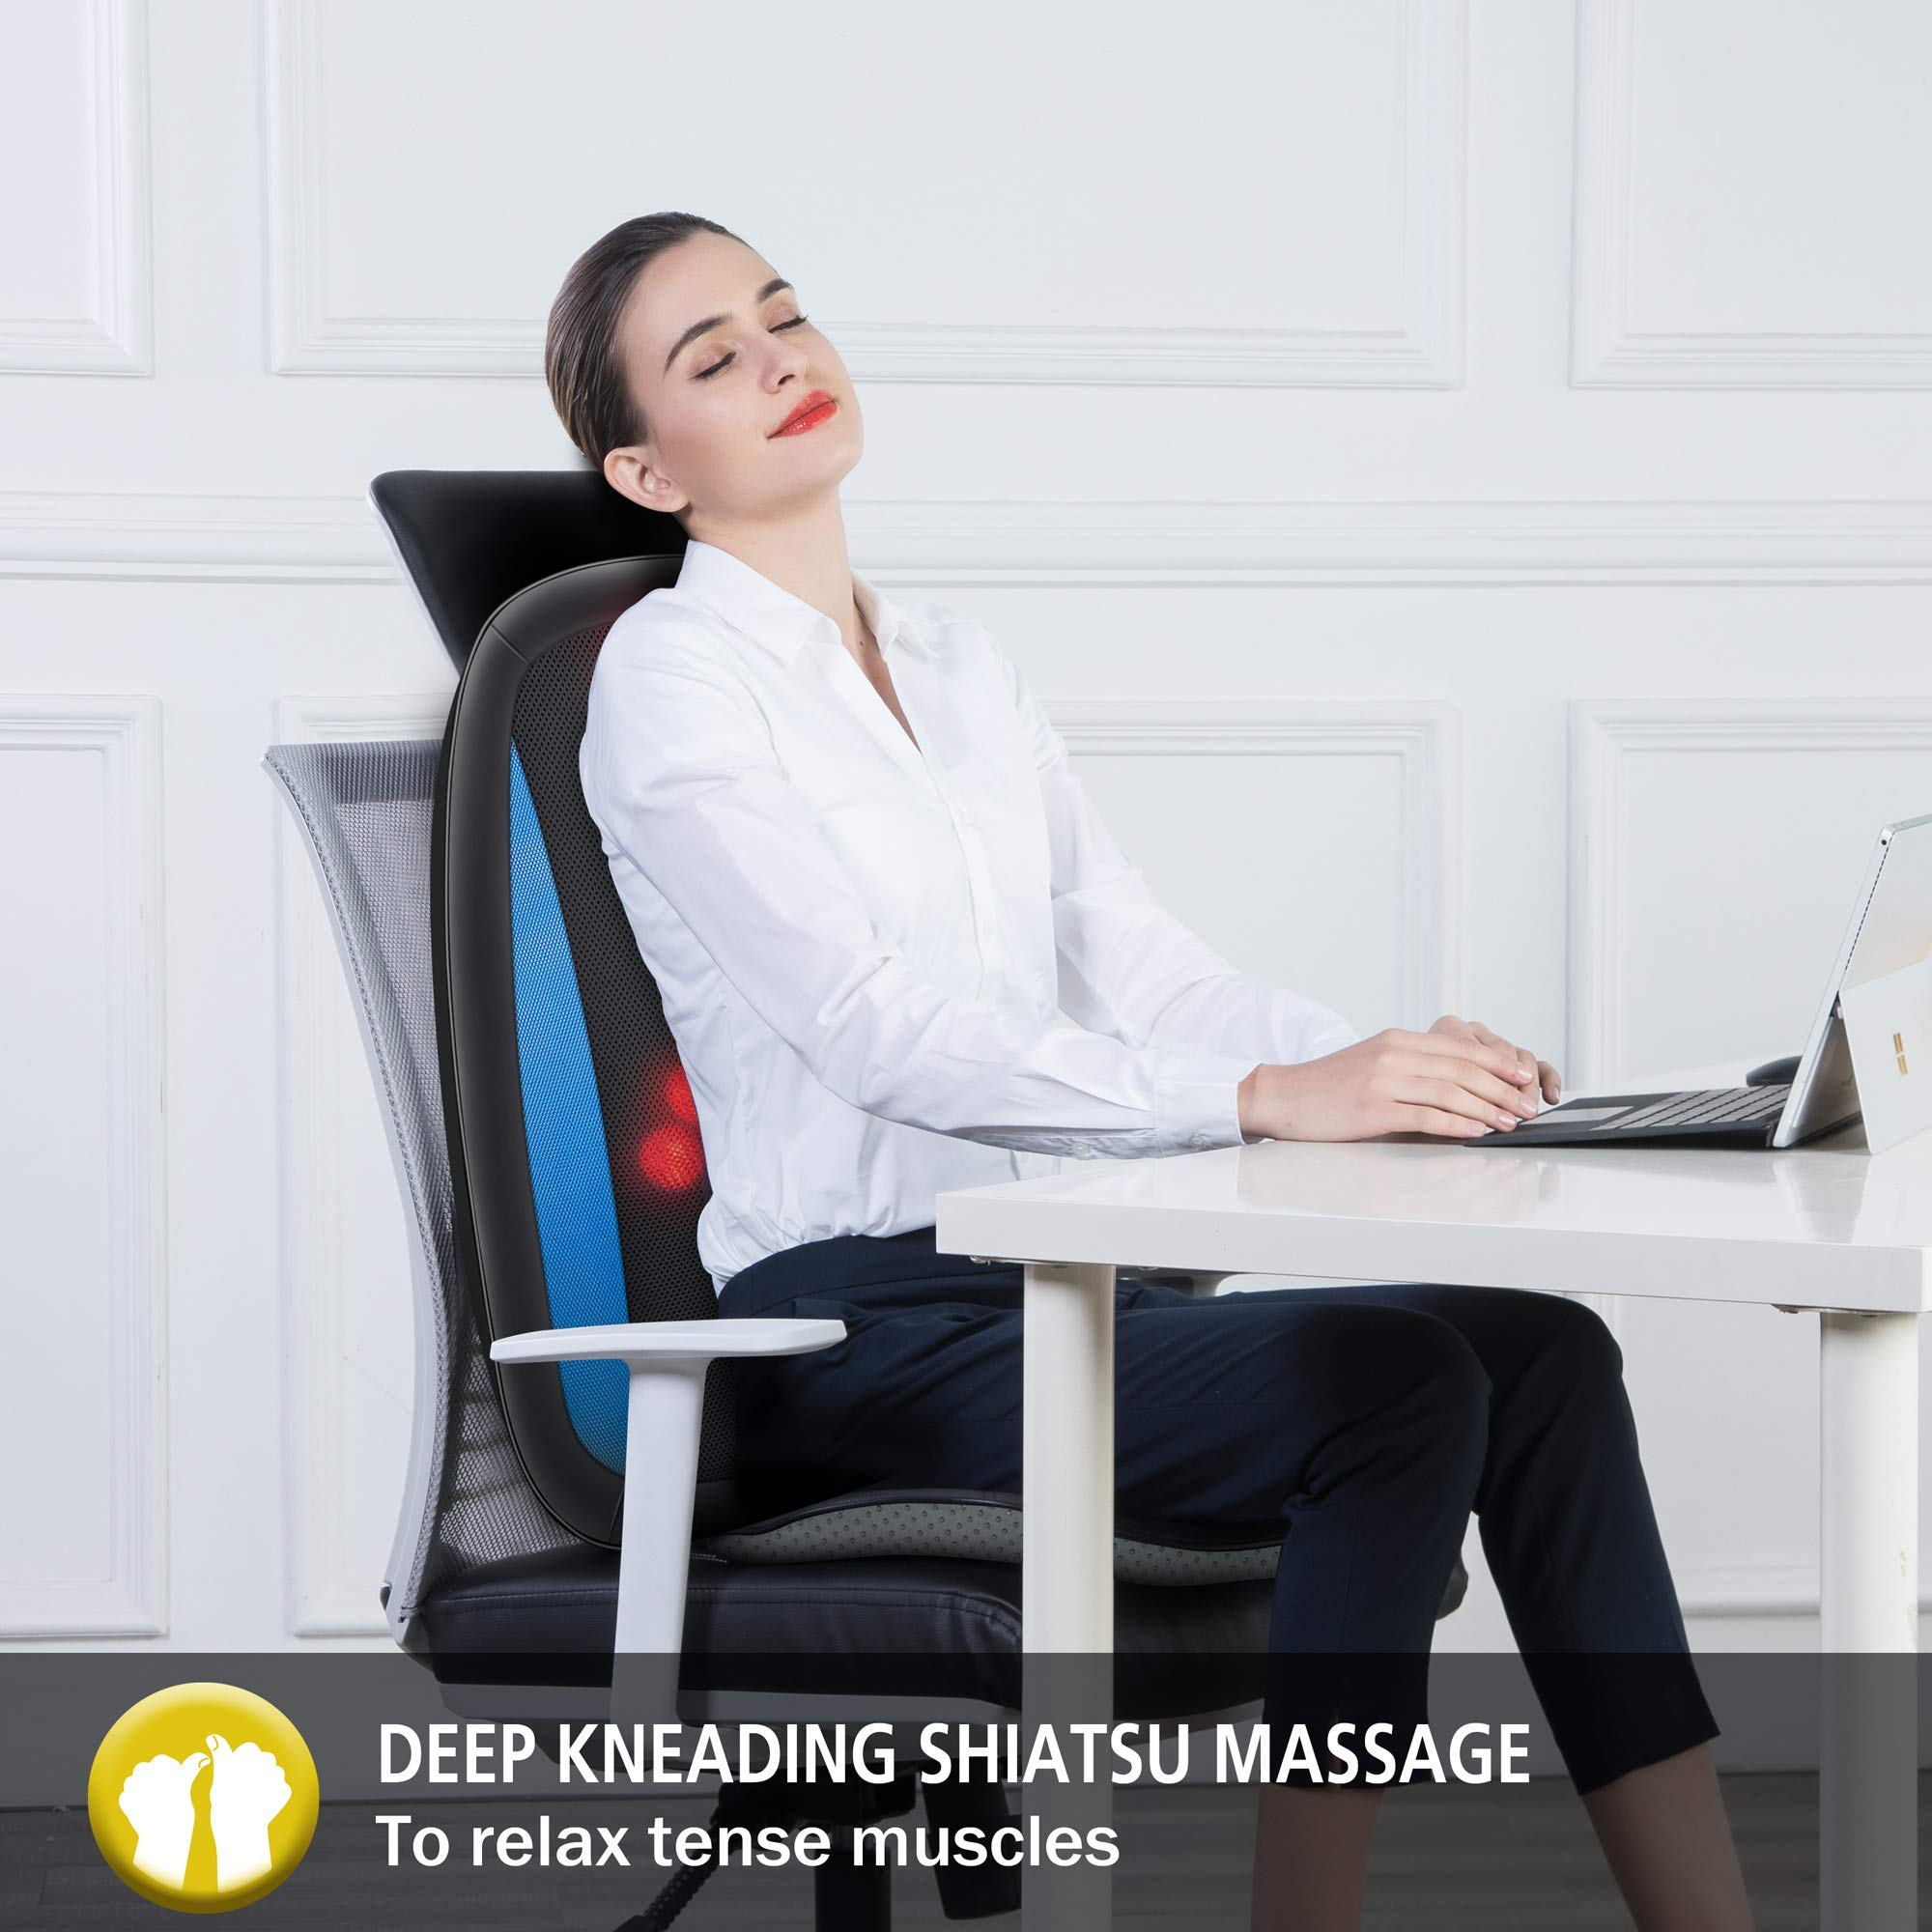 Comfier Shiatsu Back Massager with Heat -Deep Tissue Kneading Massage Seat Cushion, Massage Chair Pad for Full Back Pain Relief, Electric Body Massager for Home or Office Chair use by COMFIER (Image #2)